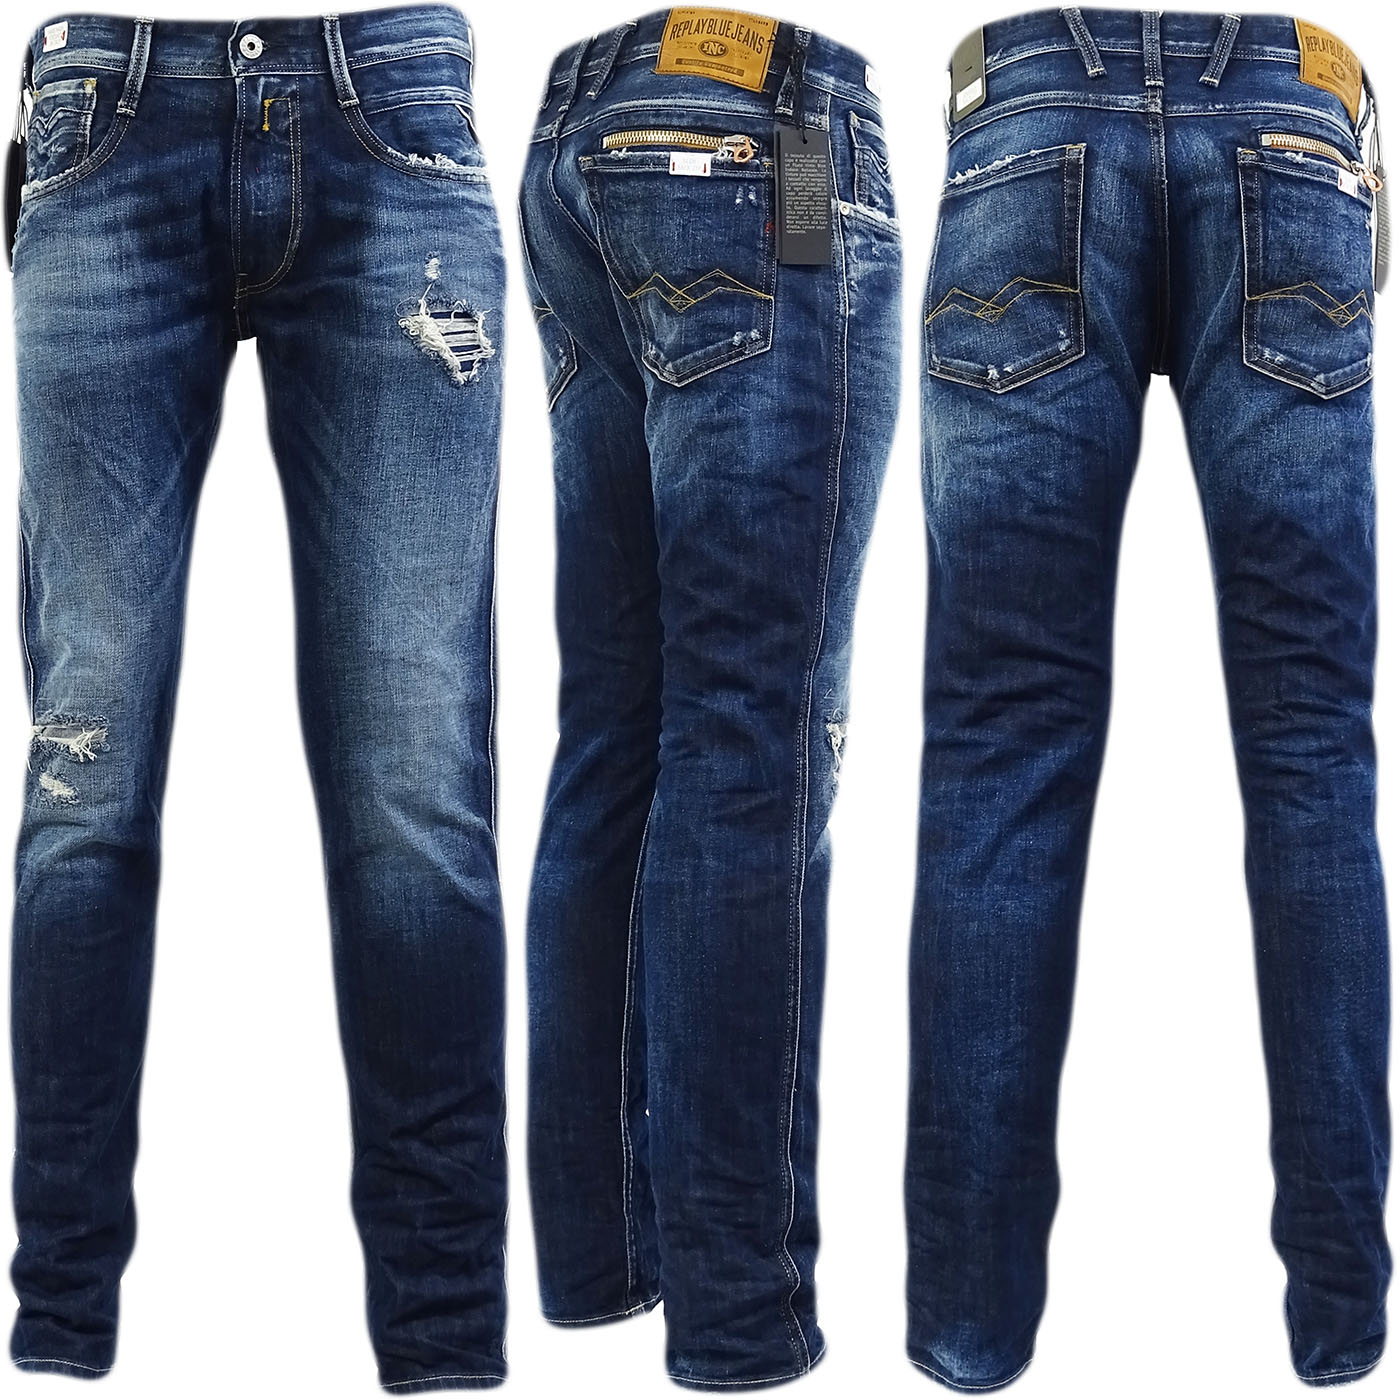 3a7883c4 Sentinel Replay Blue Jean - Anbass Slim Fit Frayed And Ripped Denim Pant -  Mc914.61C